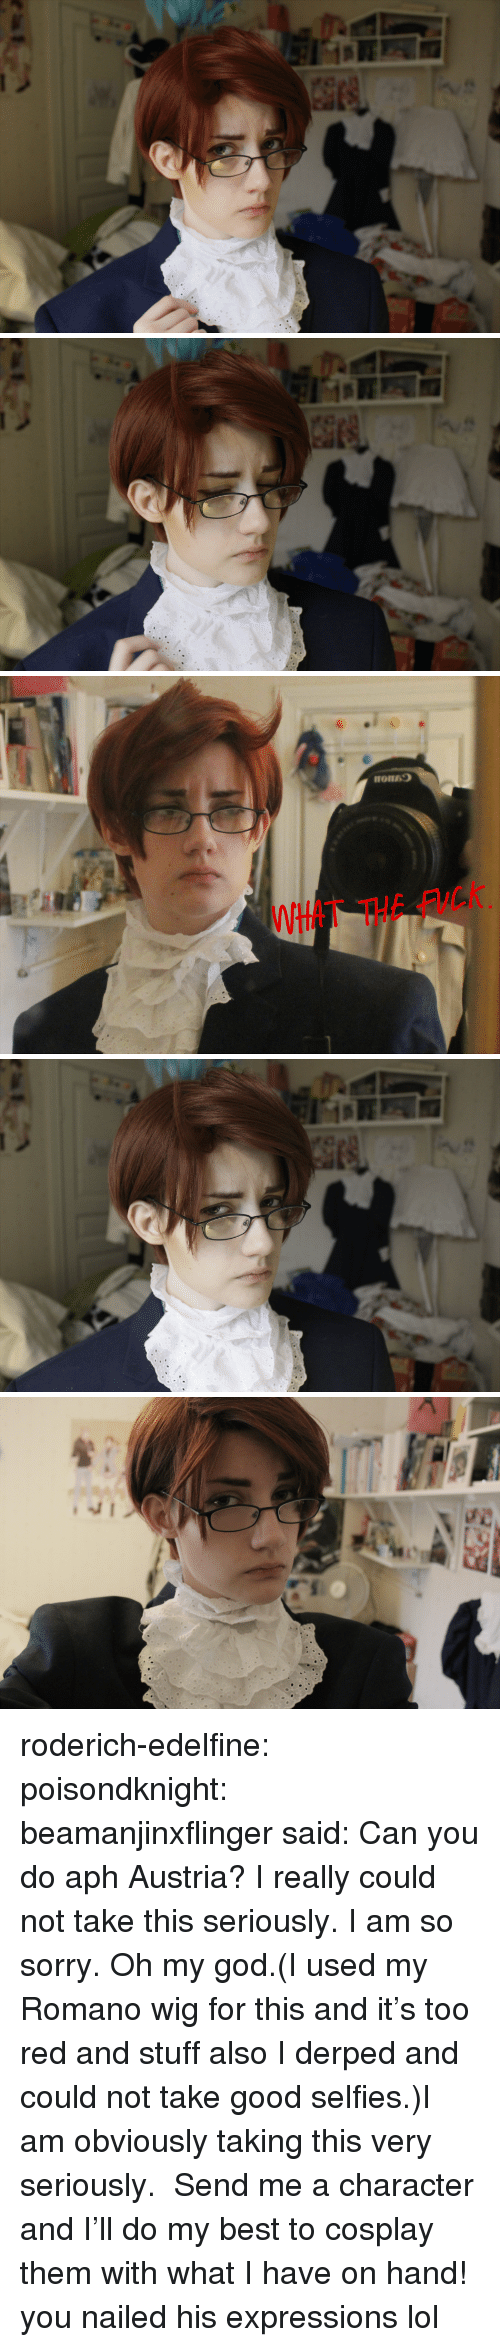 I Am So Sorry: tT THE FuCK roderich-edelfine:  poisondknight:   beamanjinxflingersaid:Can you do aph Austria?  I really could not take this seriously. I am so sorry. Oh my god.(I used my Romano wig for this and it's too red and stuff also I derped and could not take good selfies.)I am obviously taking this very seriously. Send me a character and I'll do my best to cosplay them with what I have on hand!  you nailed his expressions lol